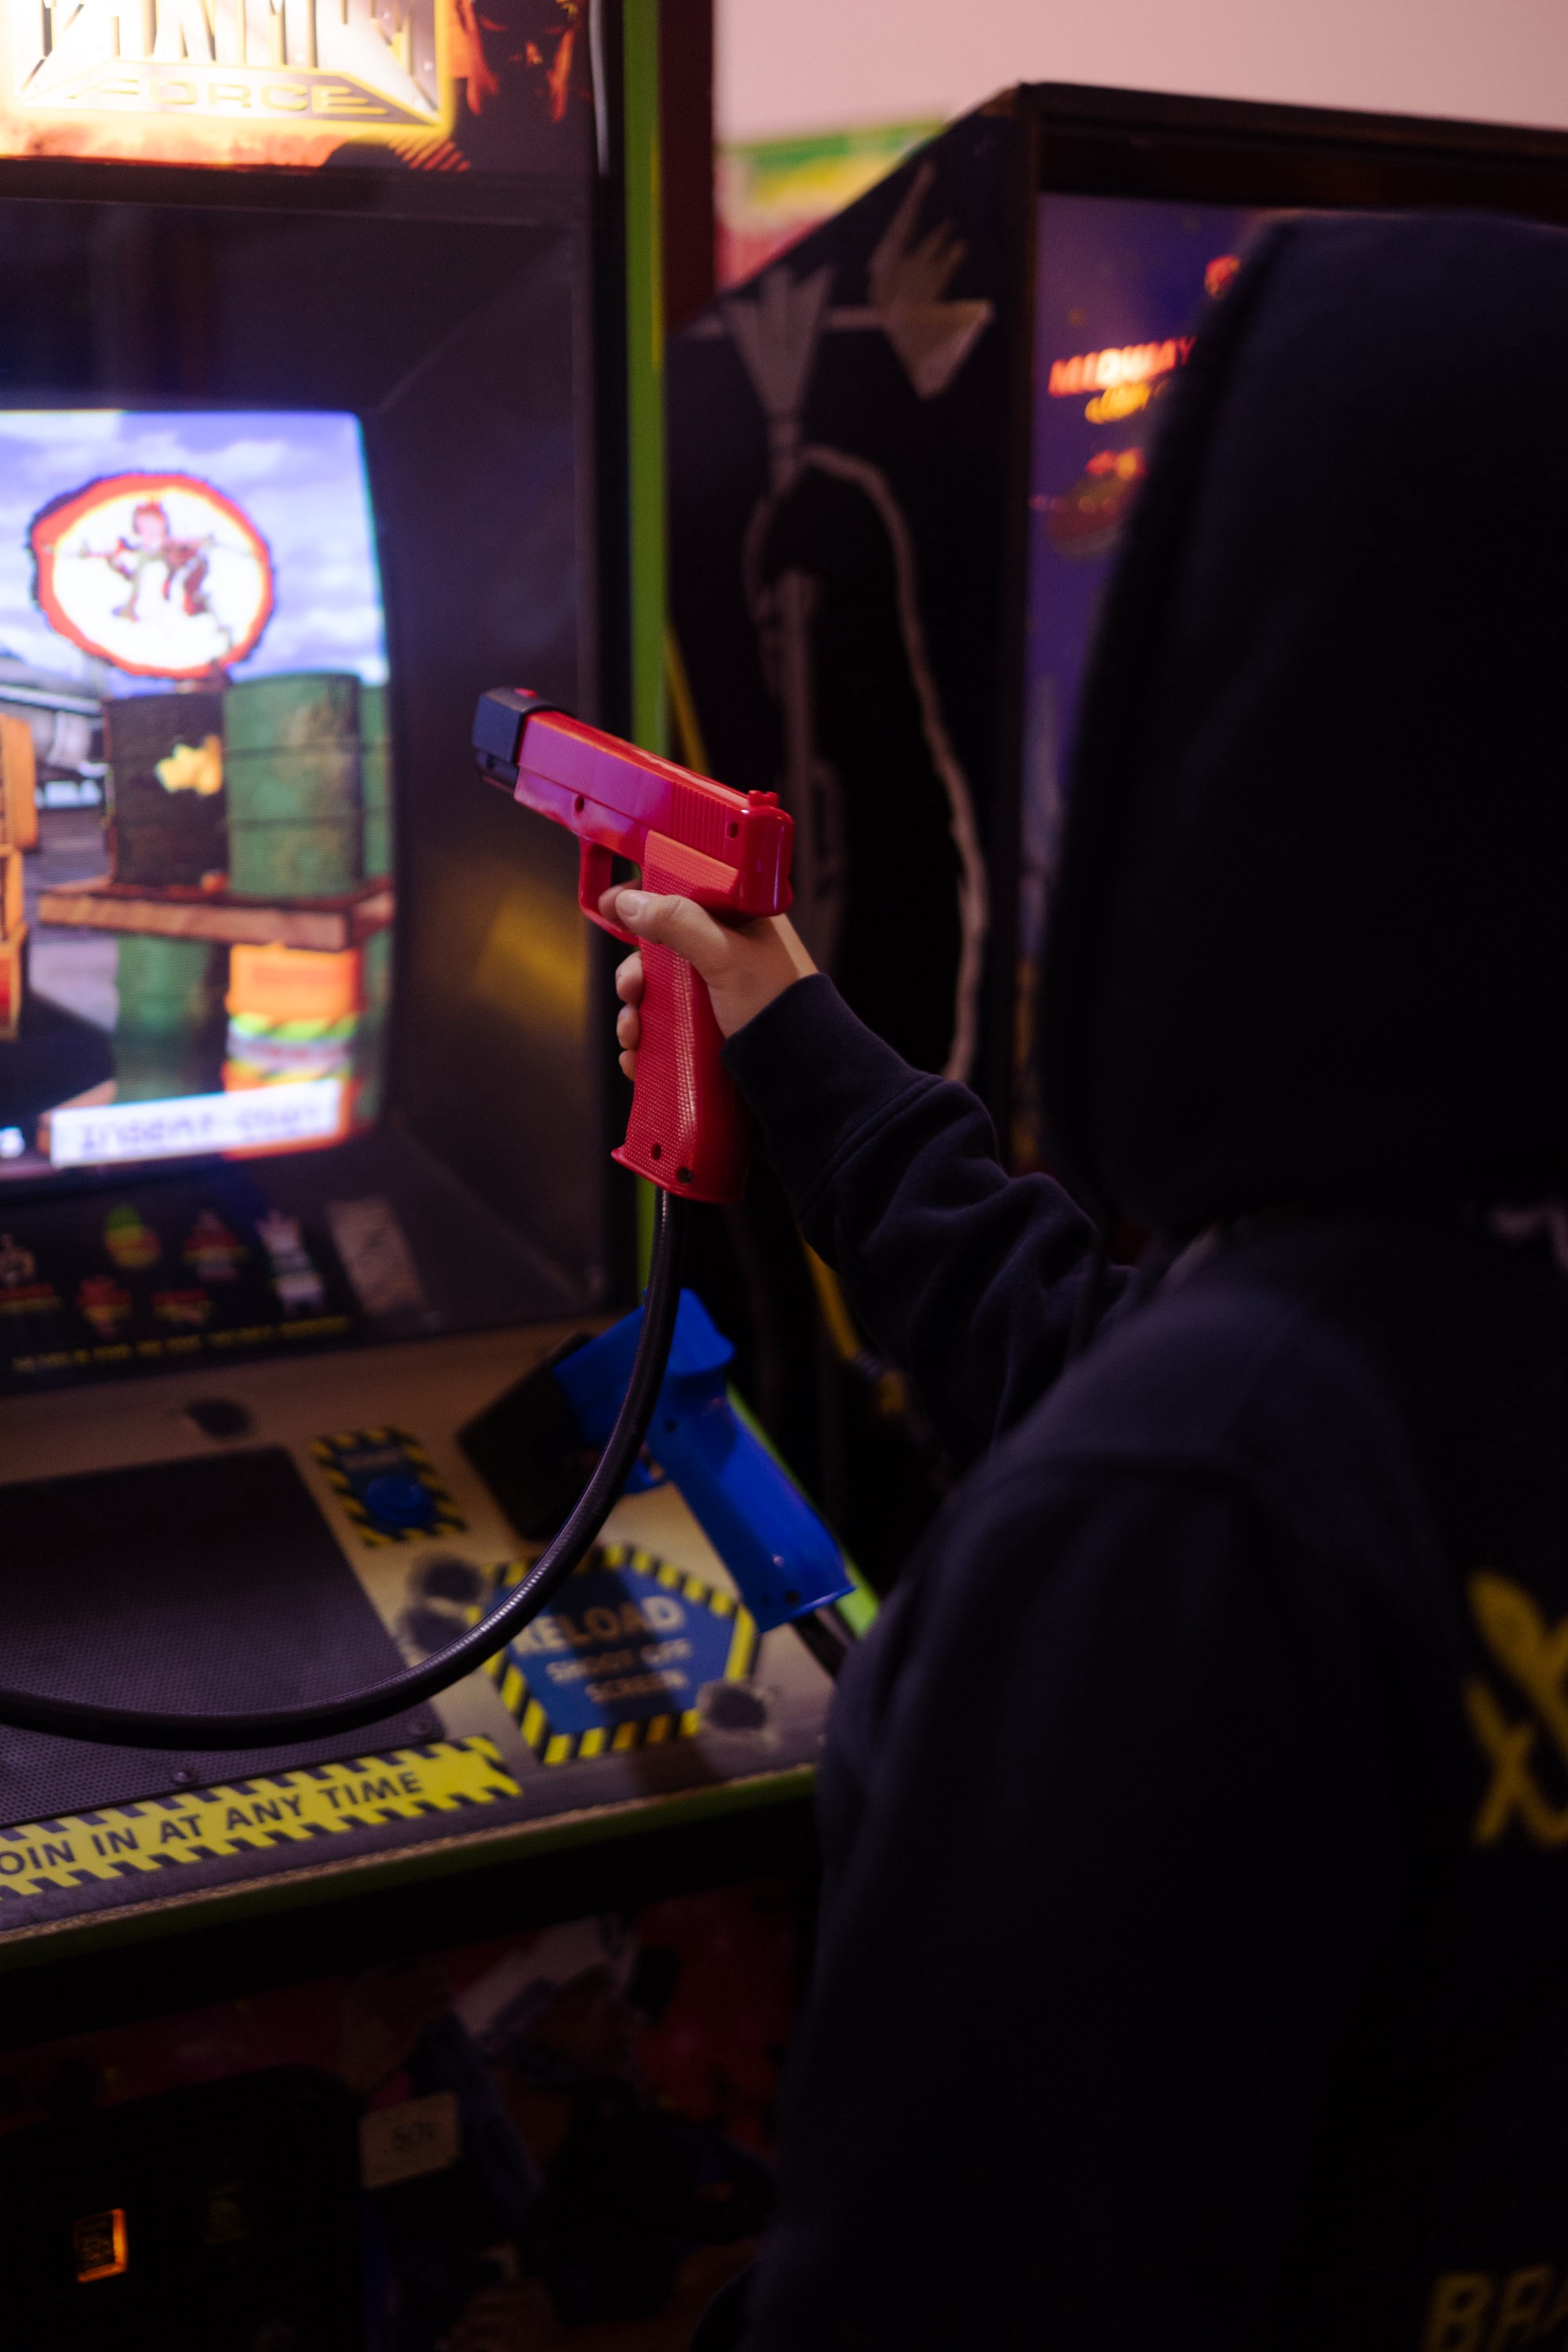 A person playing a shooting game at an arcade cabinet holding a red gun controller pointed at the screen.